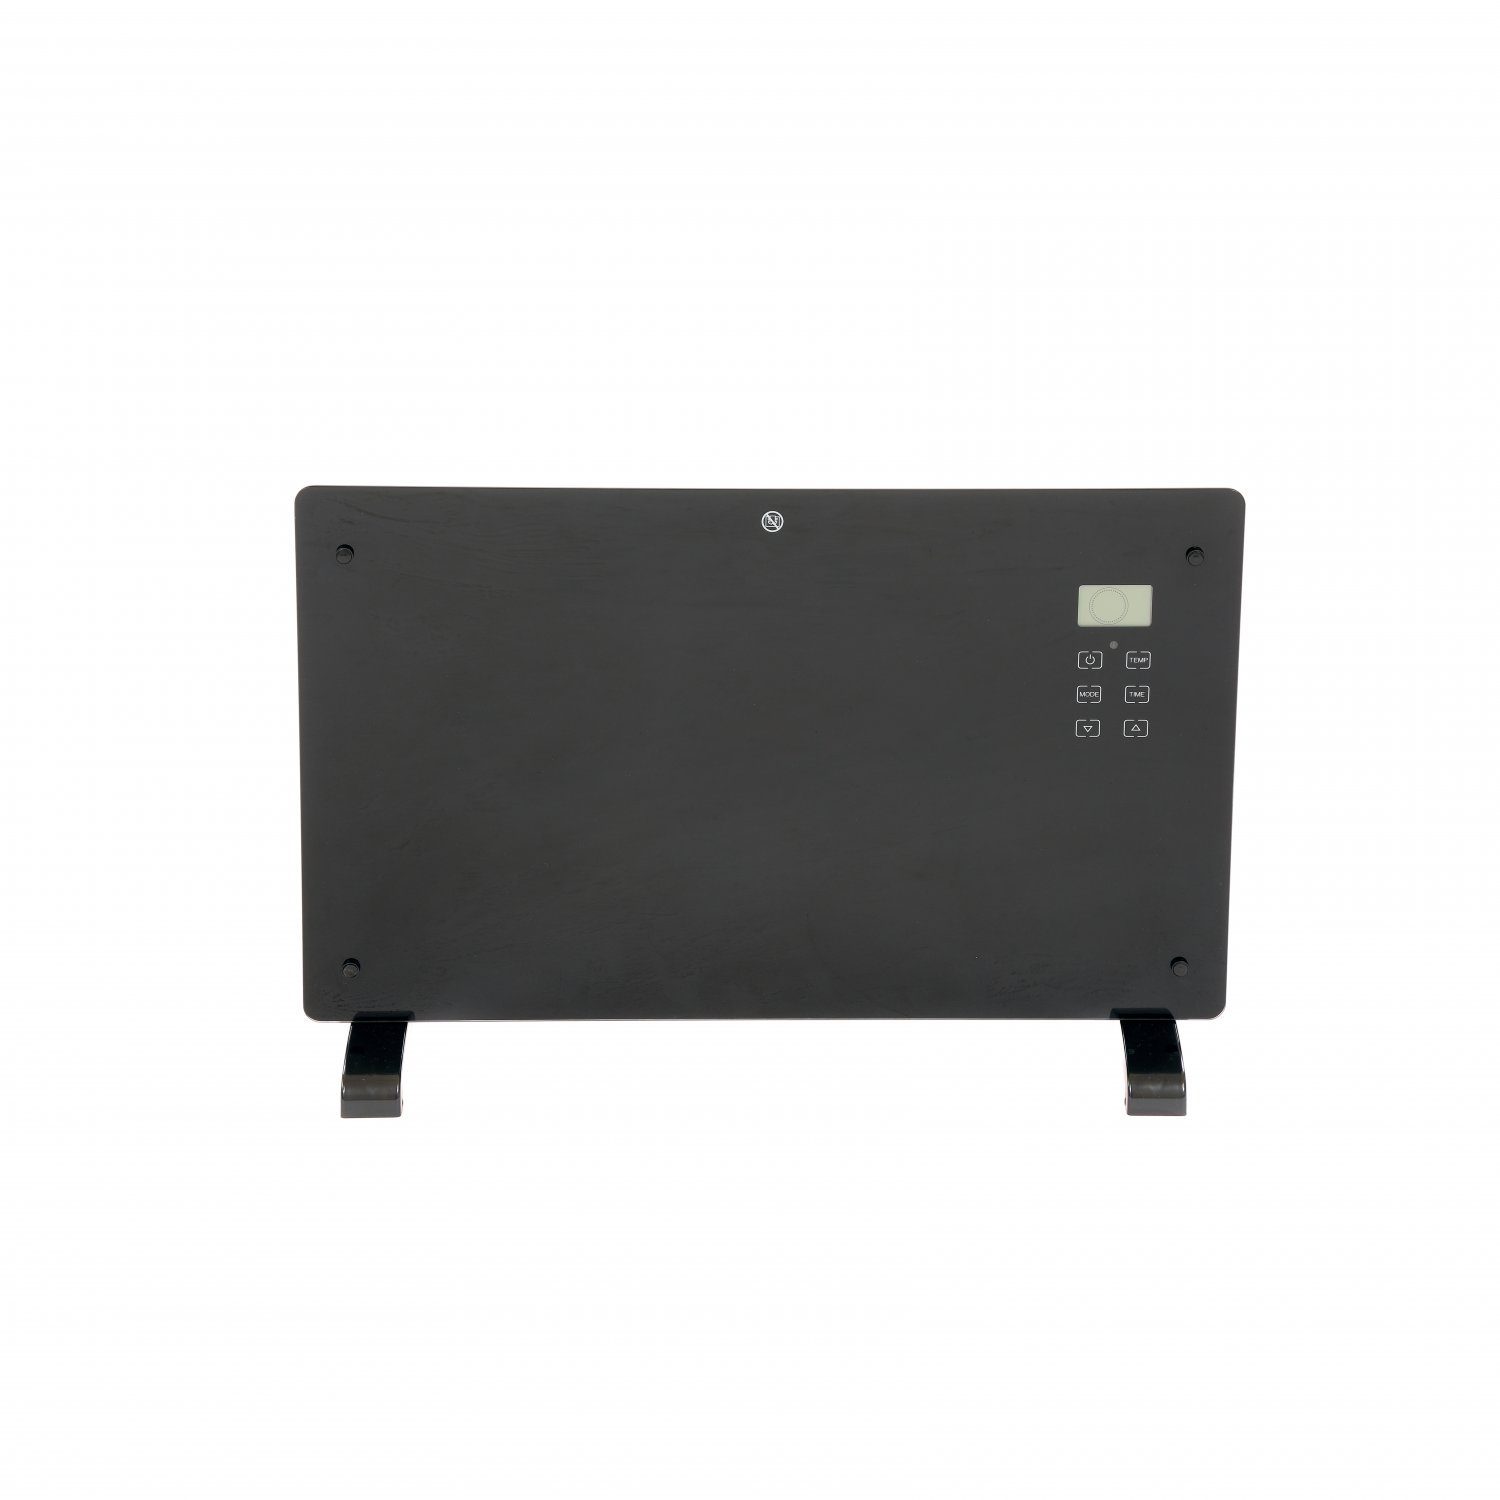 2000W Black Glass Free Standing Electric Panel Convector Heater